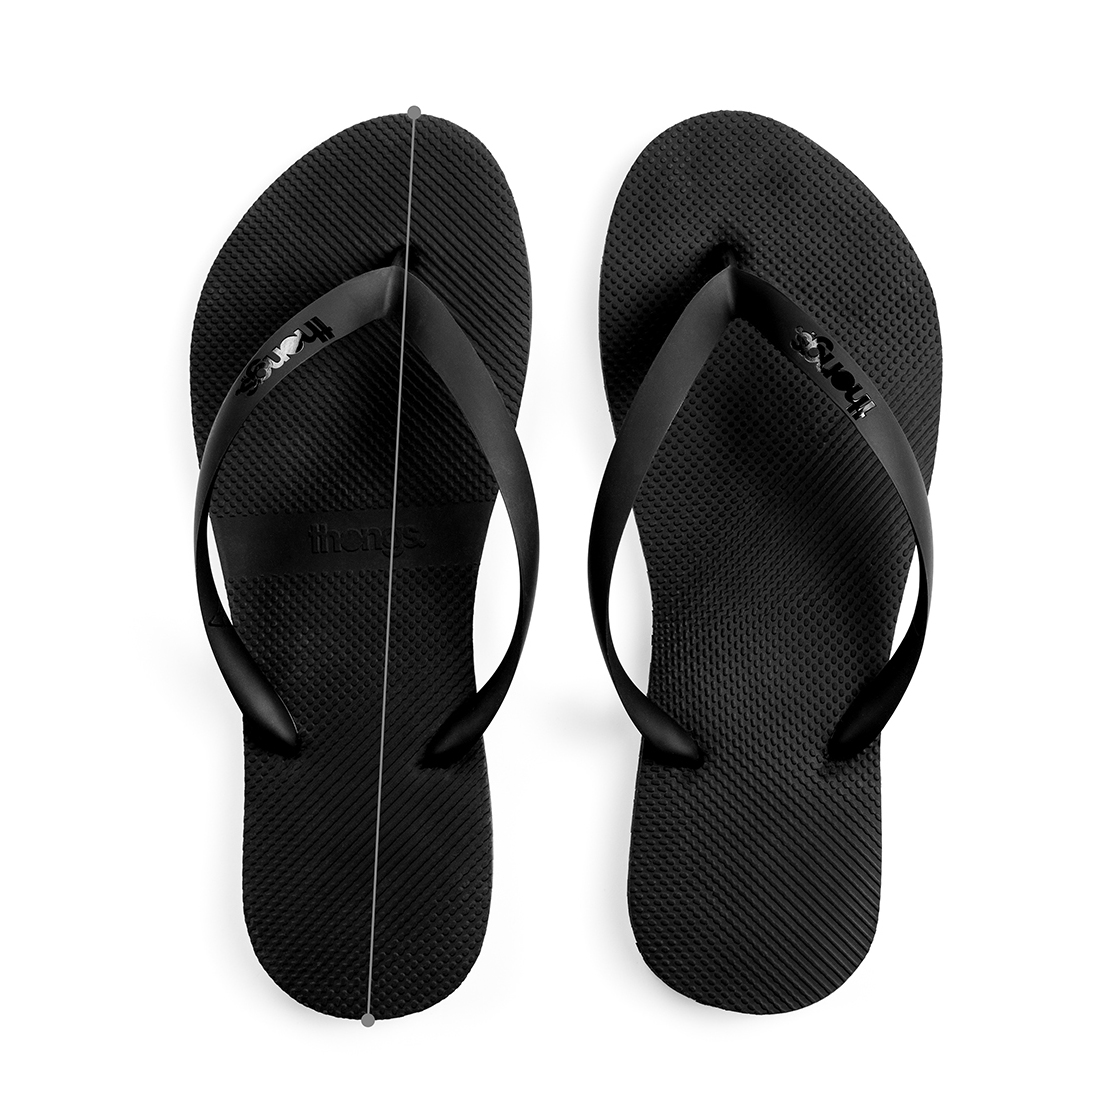 Thongs-Product-Size-Guide-WEB-SQUARE.jpg